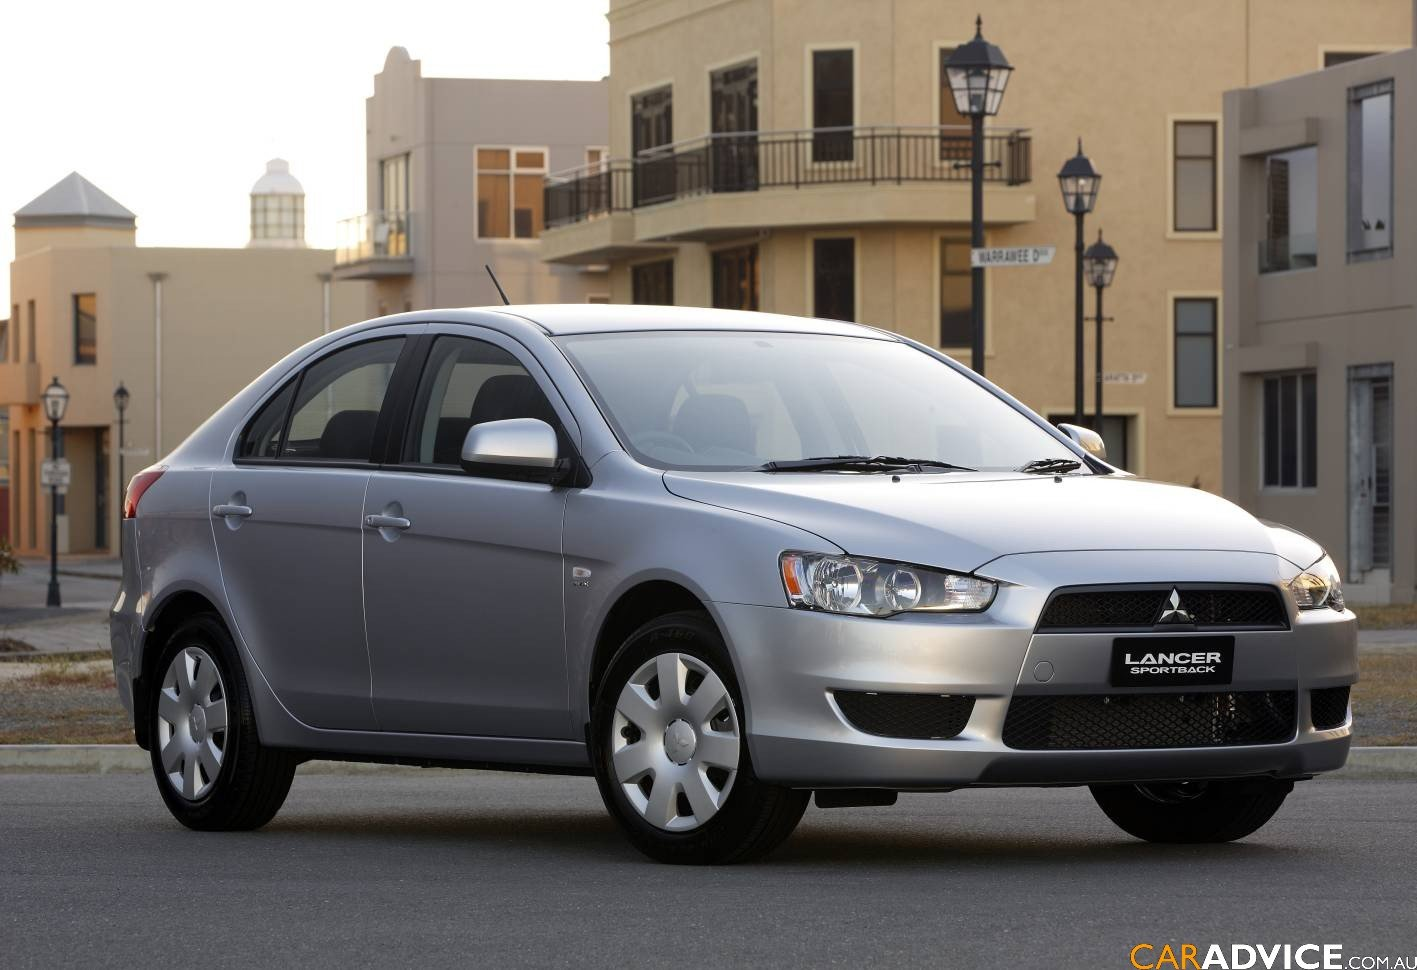 2009 Mitsubishi Lancer Sportback First Steer Photos 1